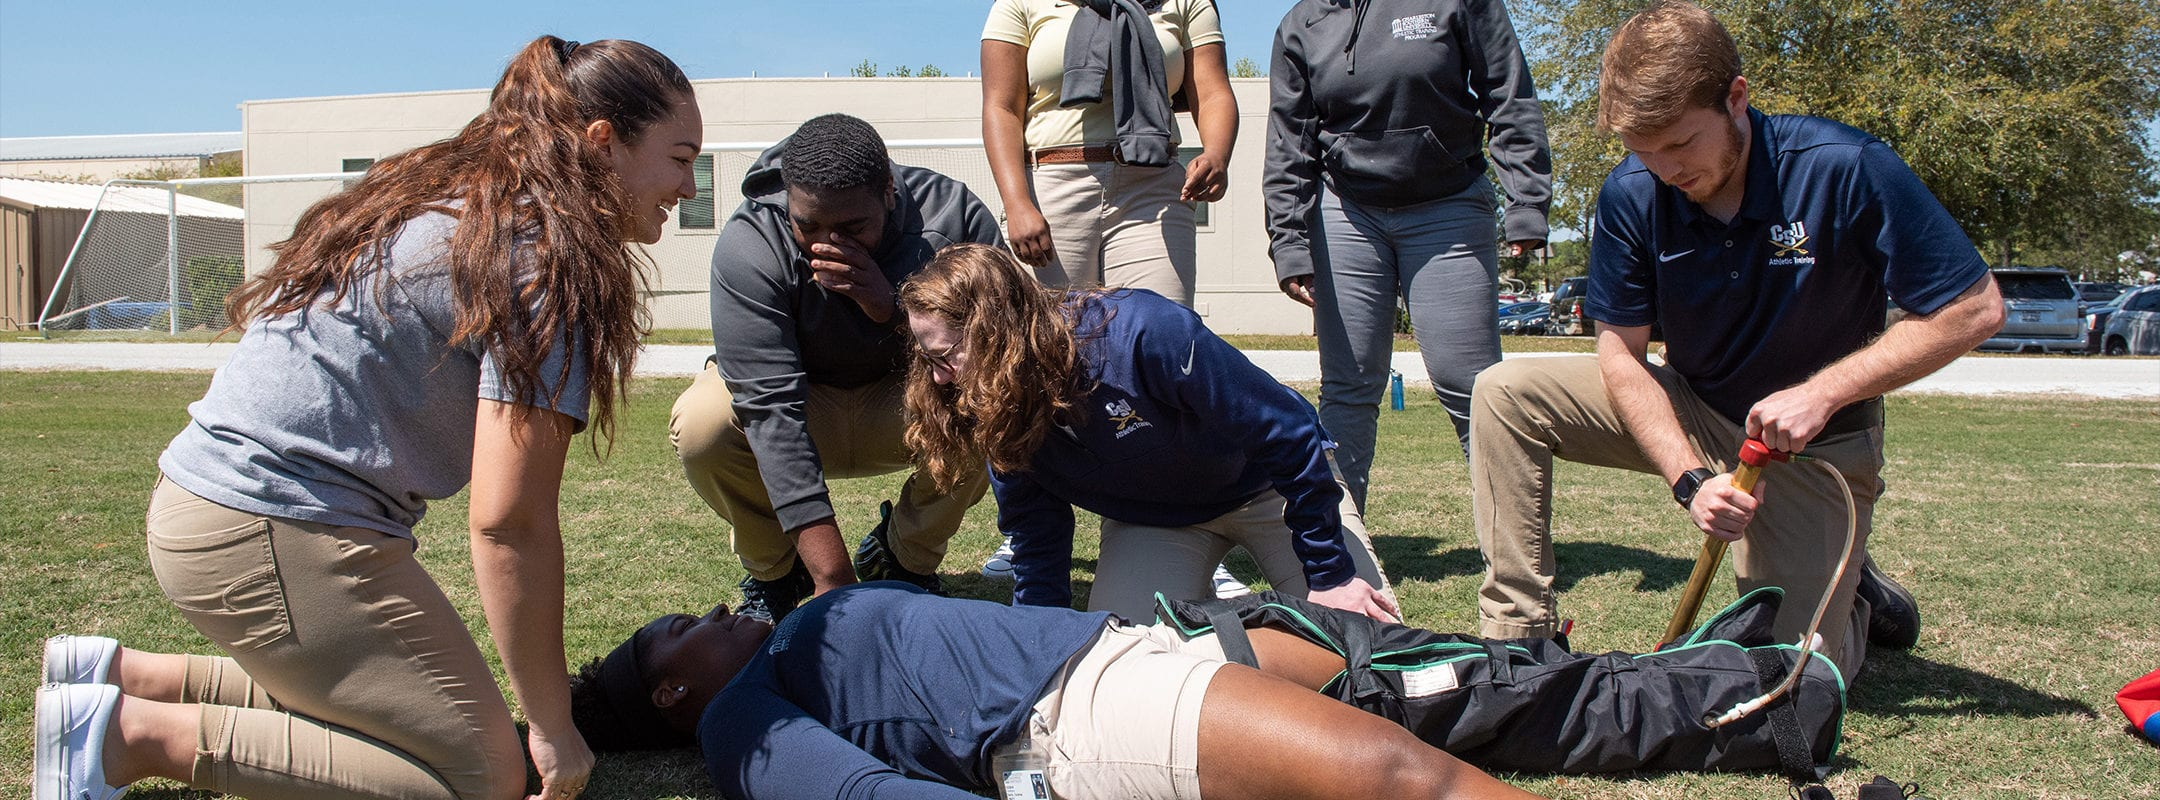 Athletic training students treating a simulated leg injury outside.